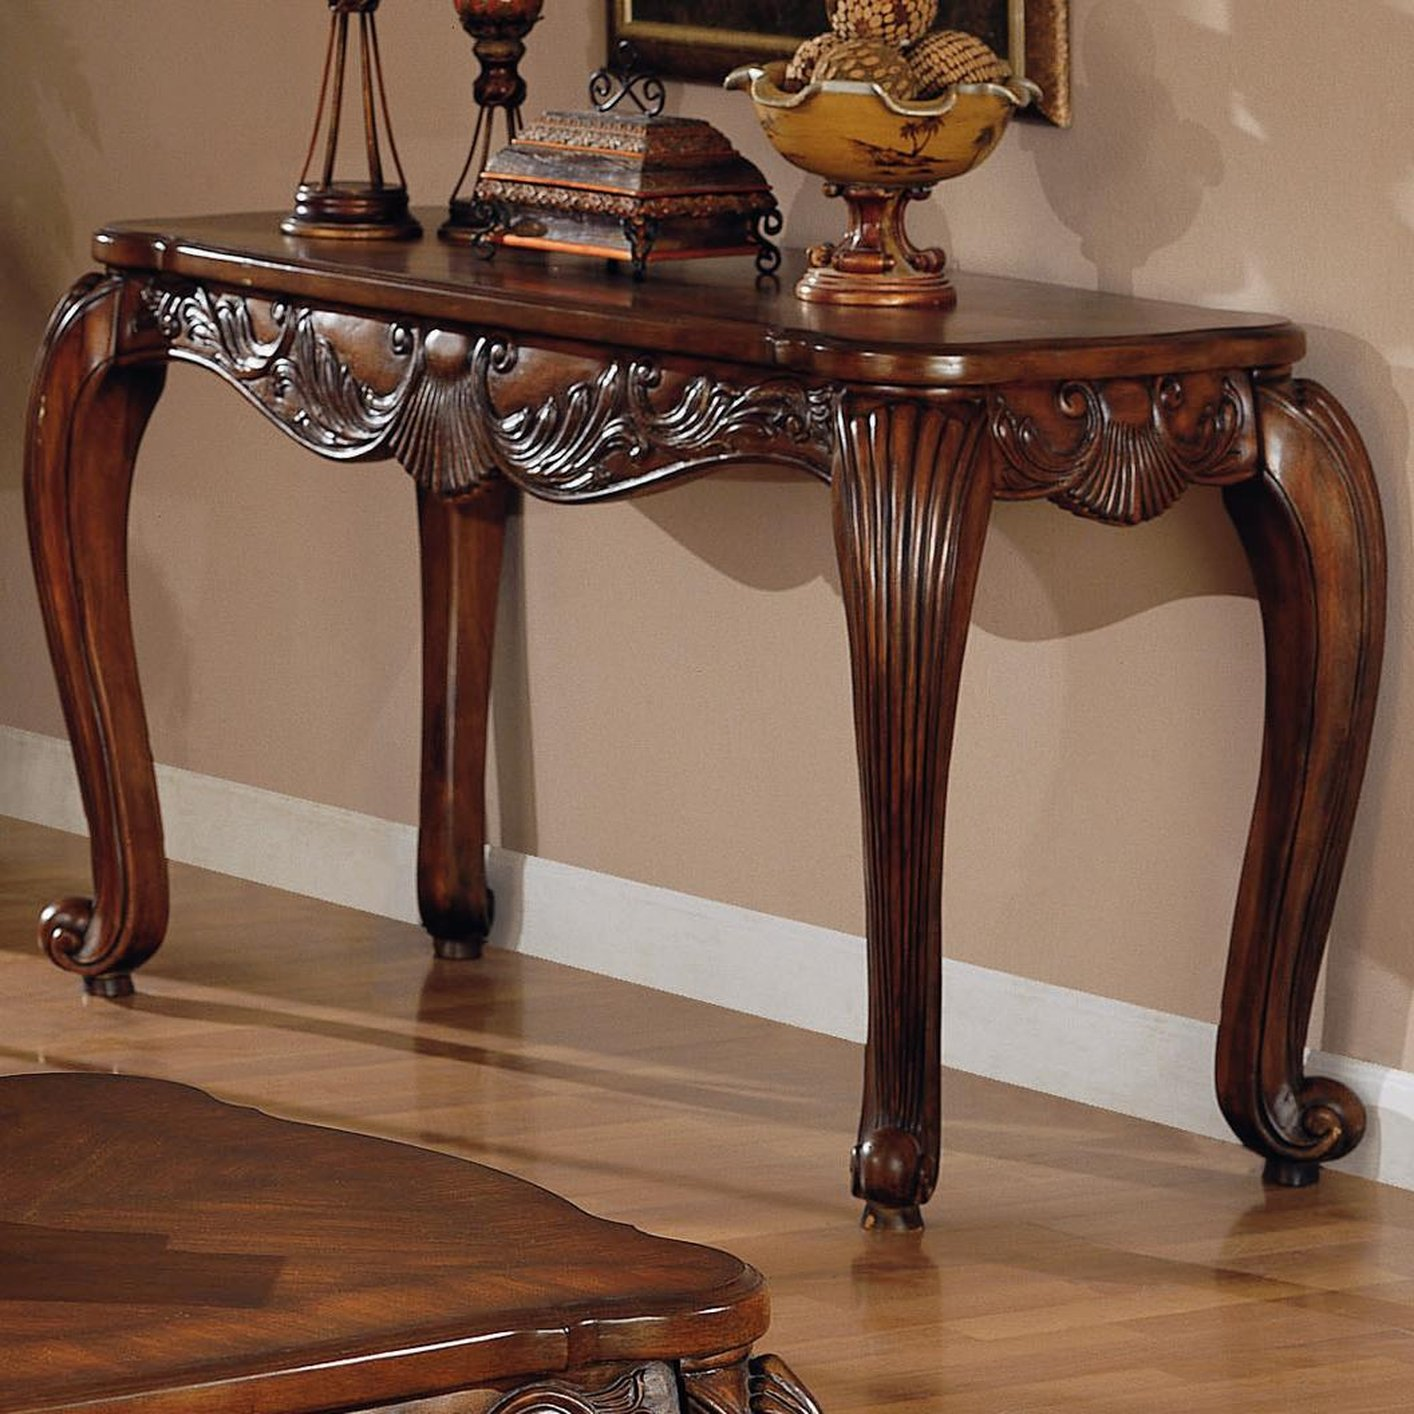 Victoria Brown Wood Console Table Steal A Sofa Furniture Outlet Los Angeles CA